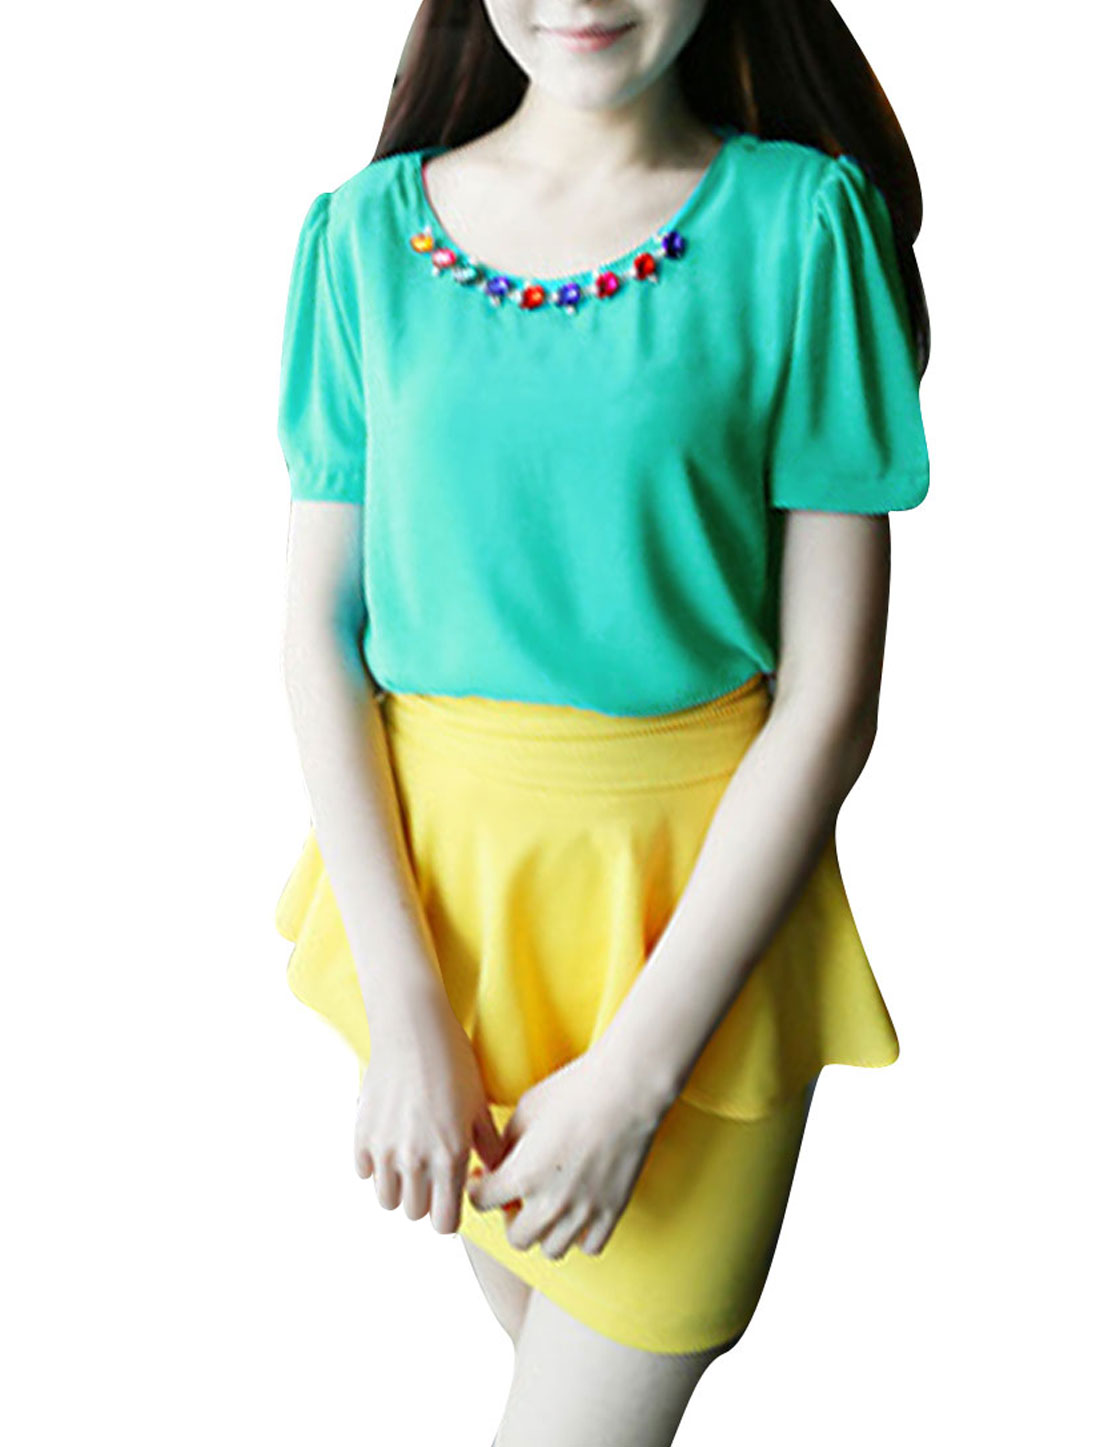 Woman Round Neck Short Sleeve Plastic Crystal Chain Decor Sea Green Blouse XS